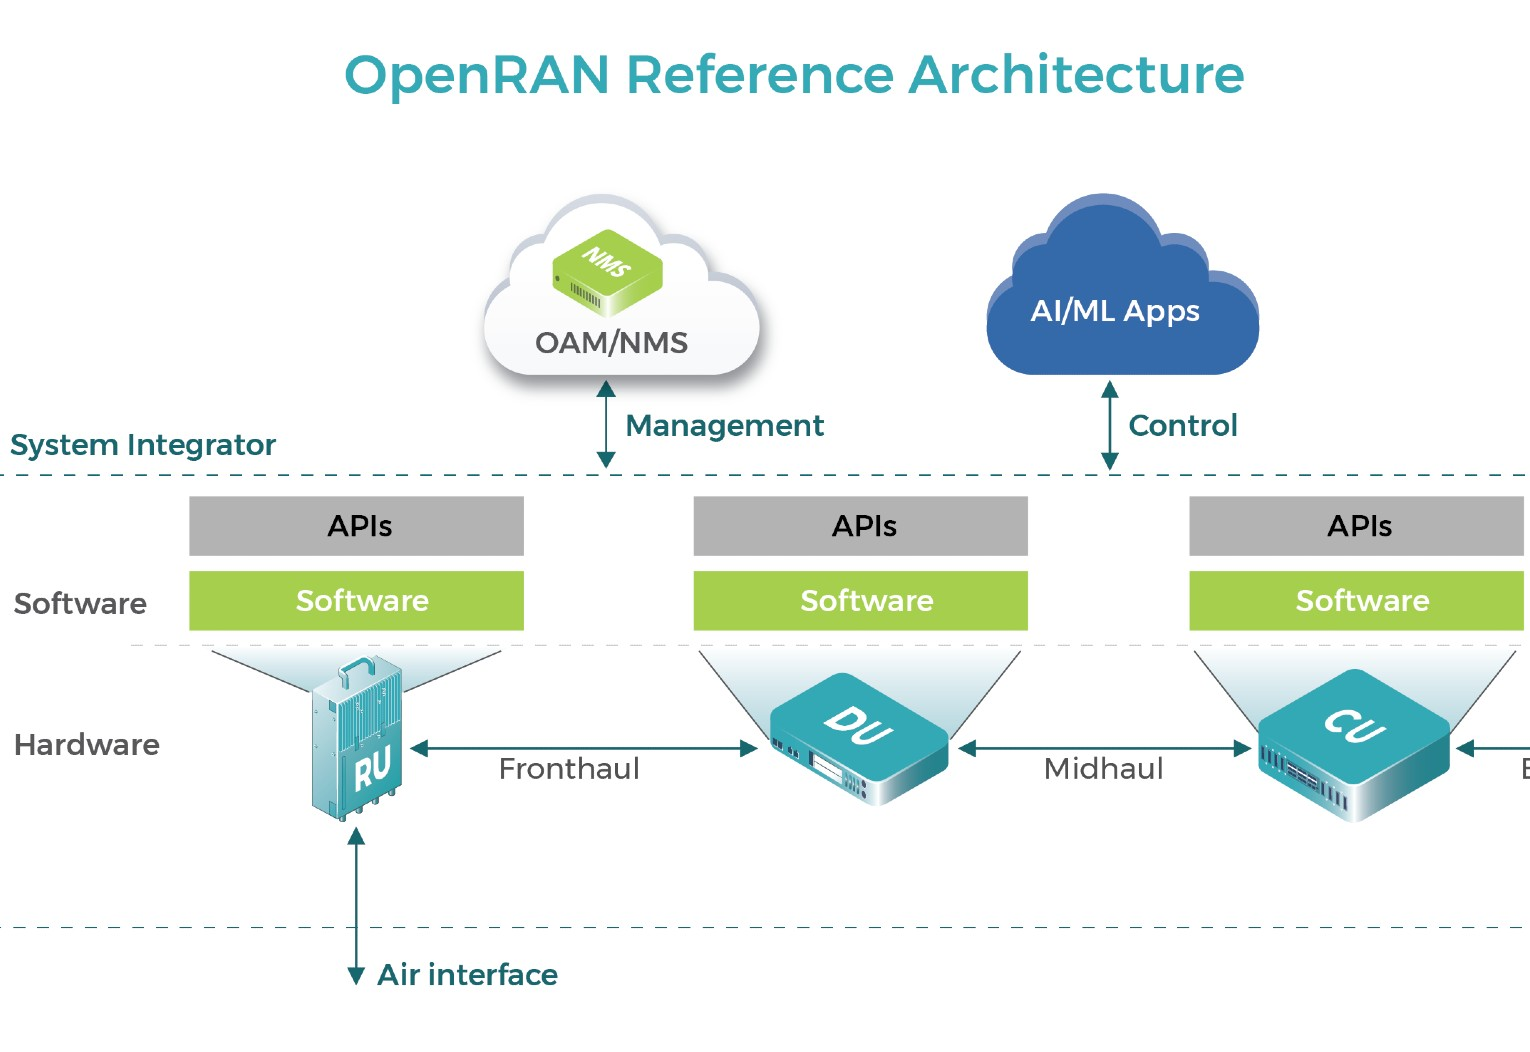 OpenRAN Architecture not